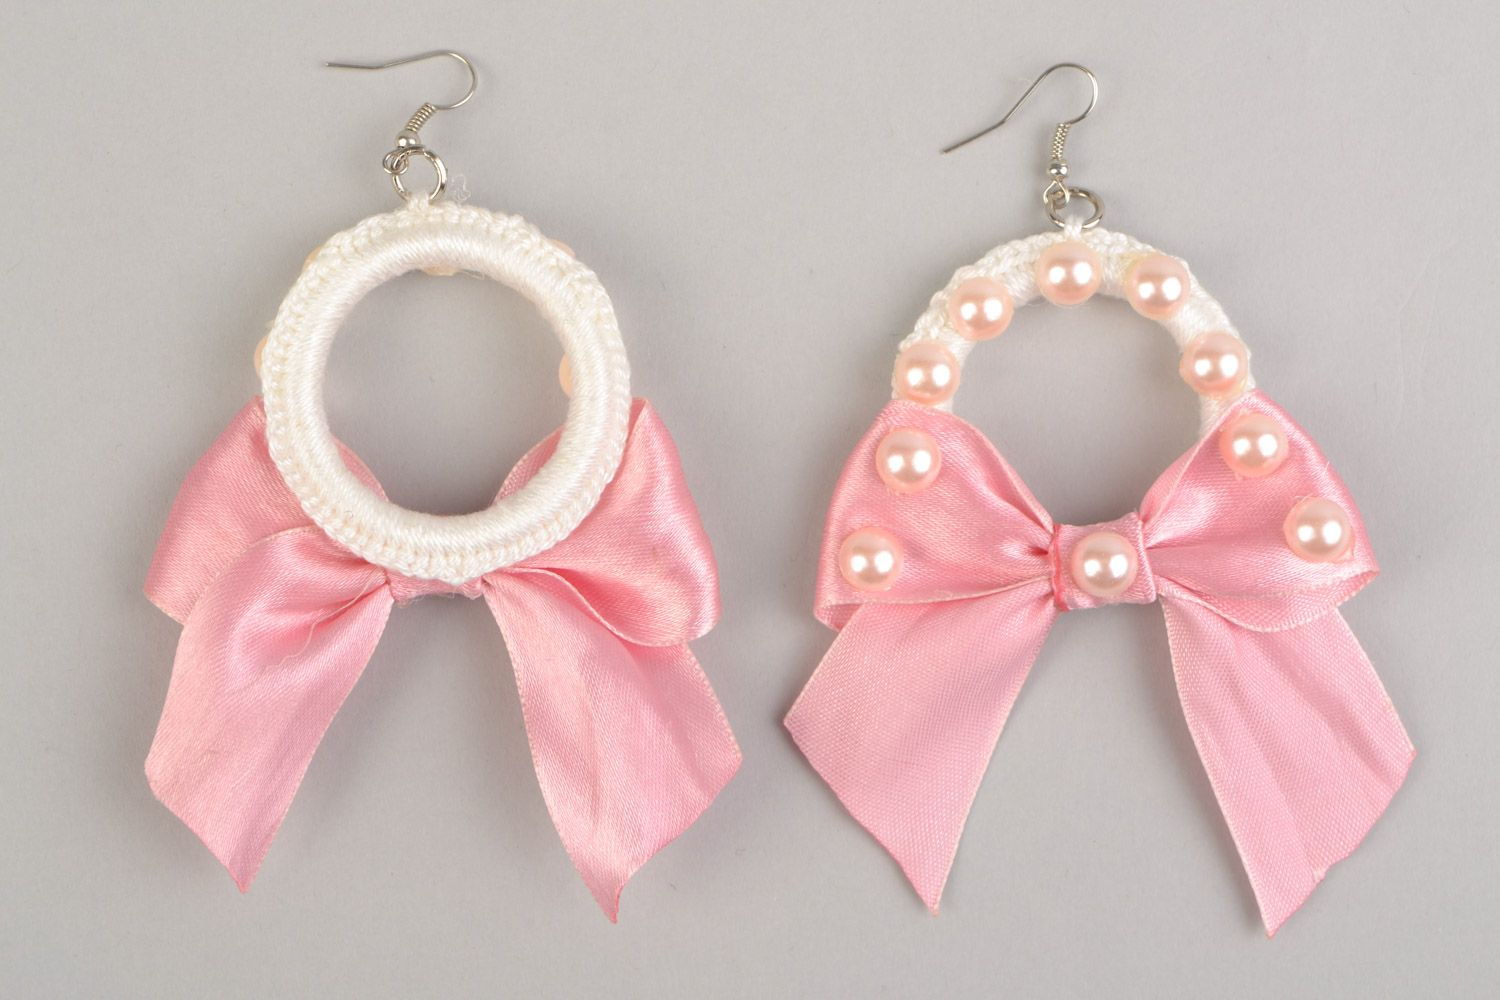 Braided earrings made of plastic rings and threads with pink ribbons present for girlfriend photo 3